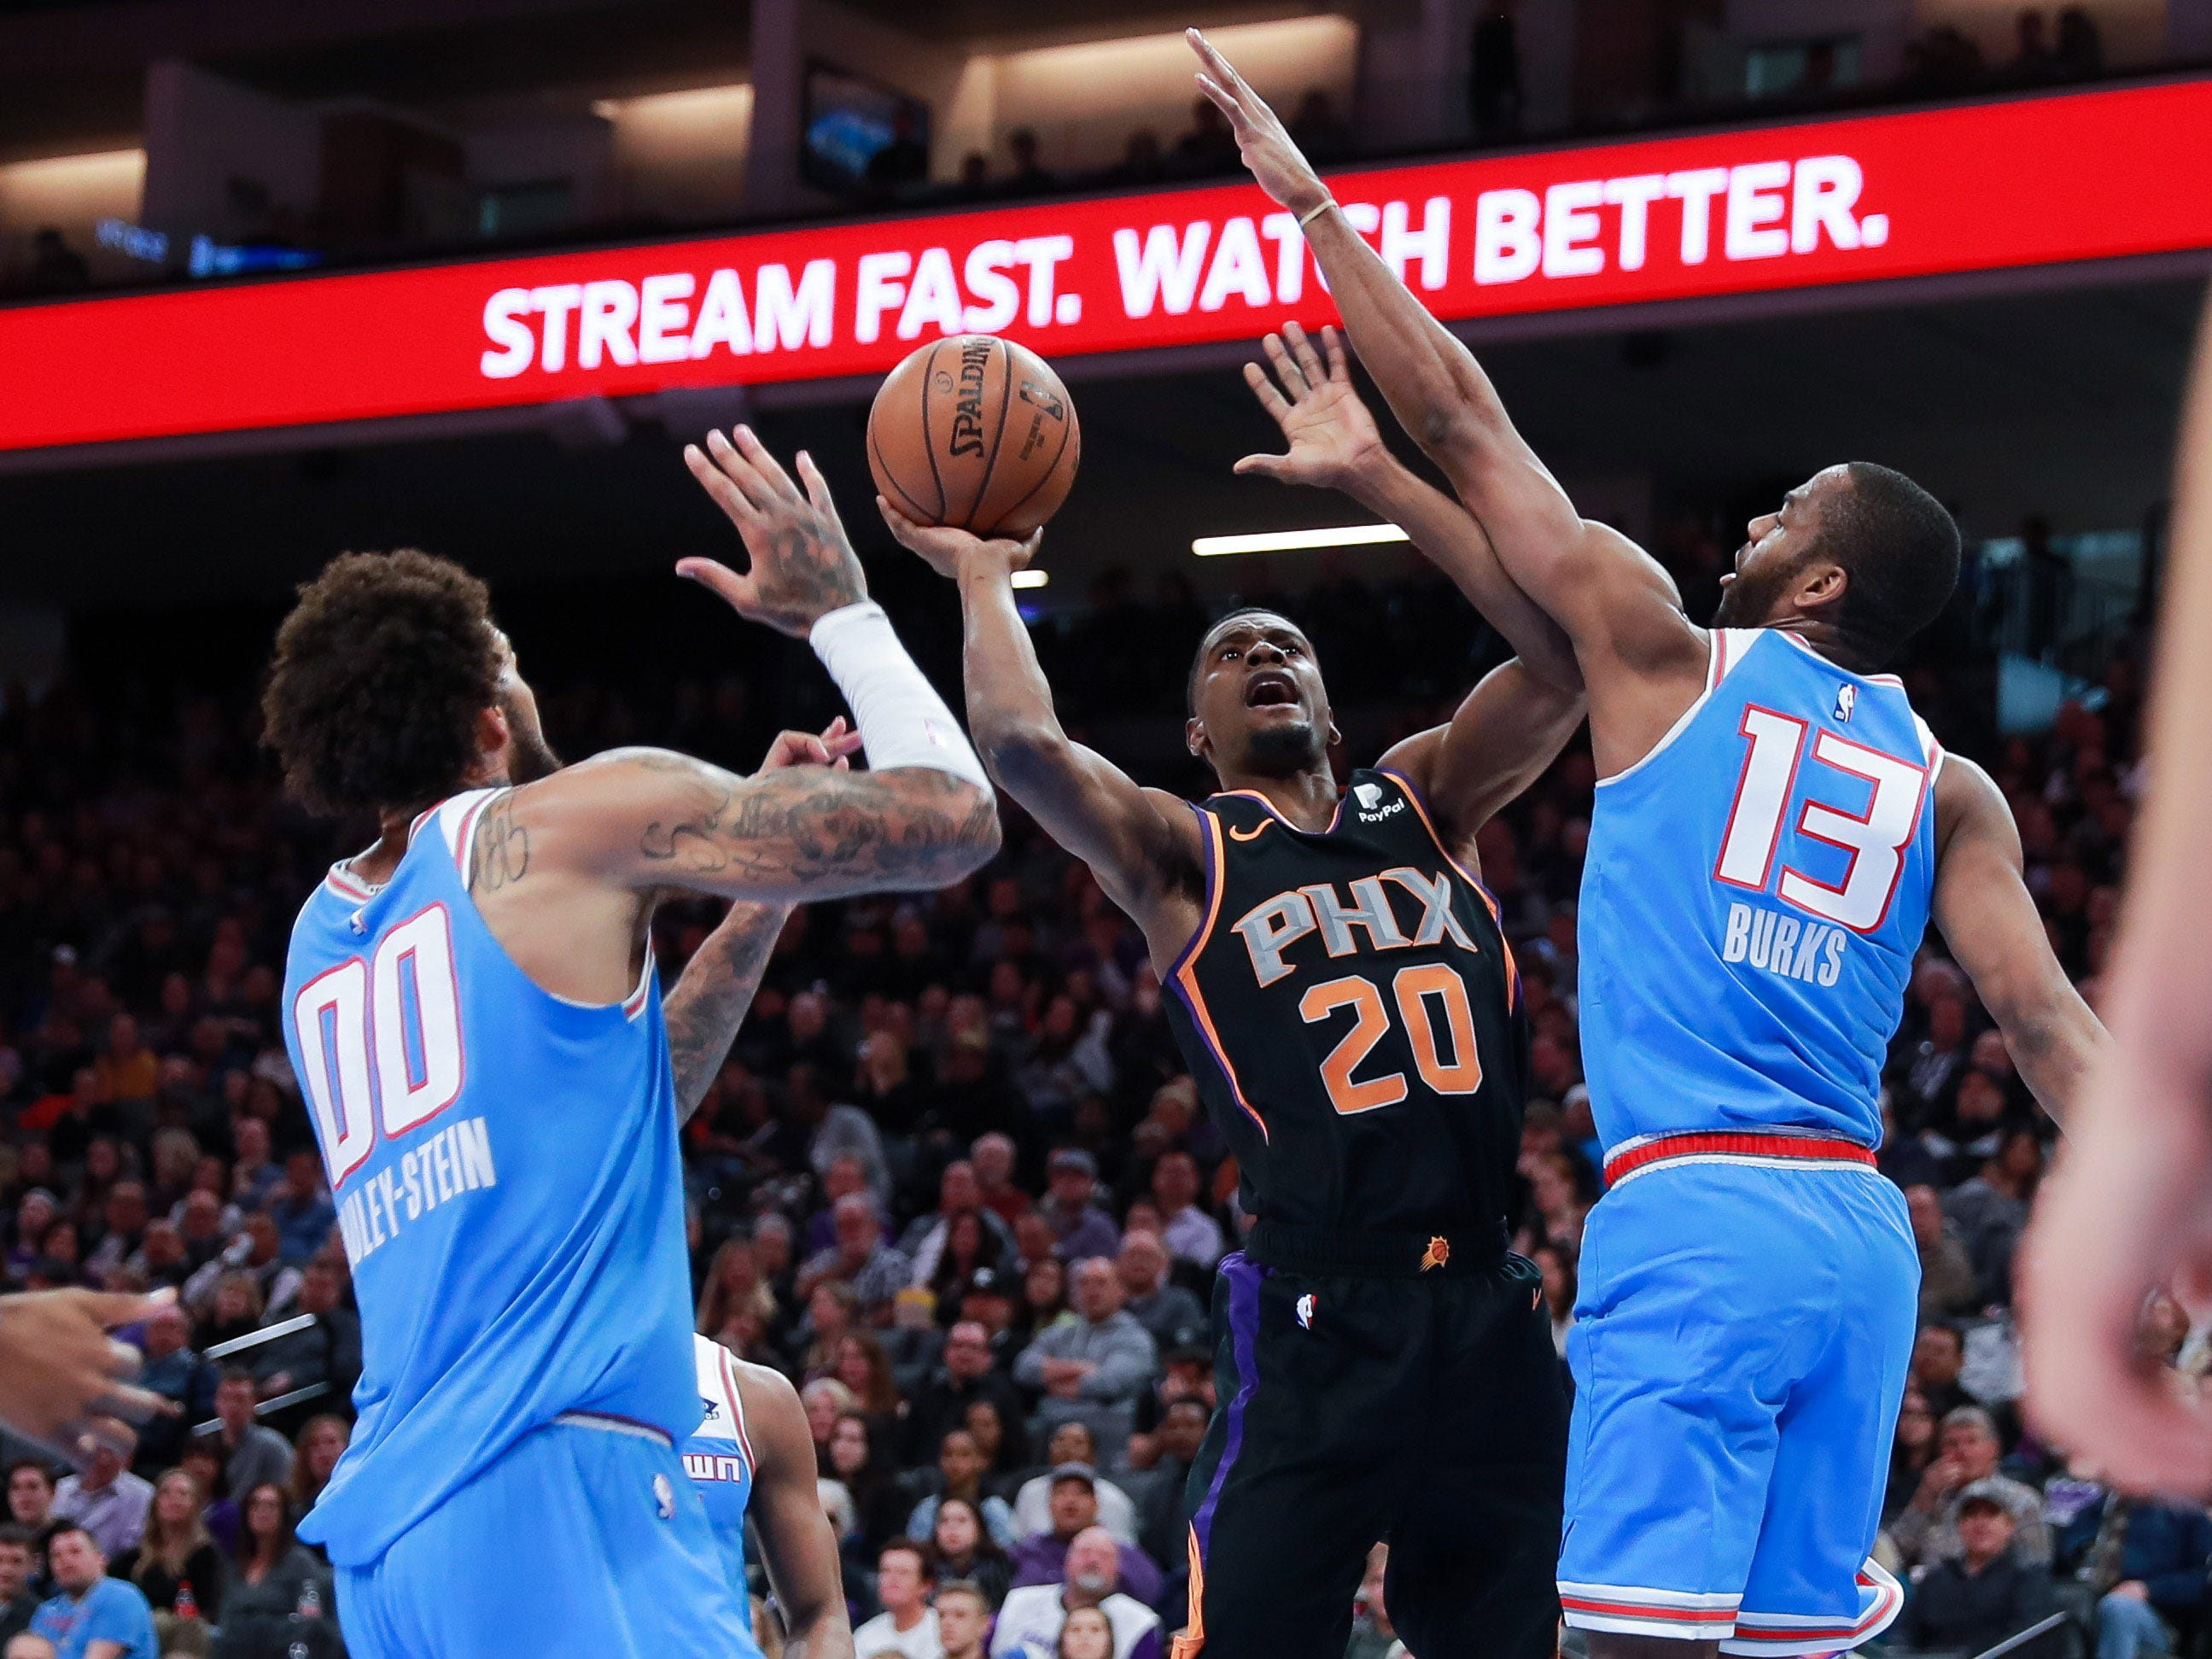 Feb 10, 2019; Sacramento, CA, USA; Phoenix Suns forward Josh Jackson (20) shoots the ball against Sacramento Kings guard Alec Burks (13) and center Willie Cauley-Stein (00) during the second quarter at Golden 1 Center.